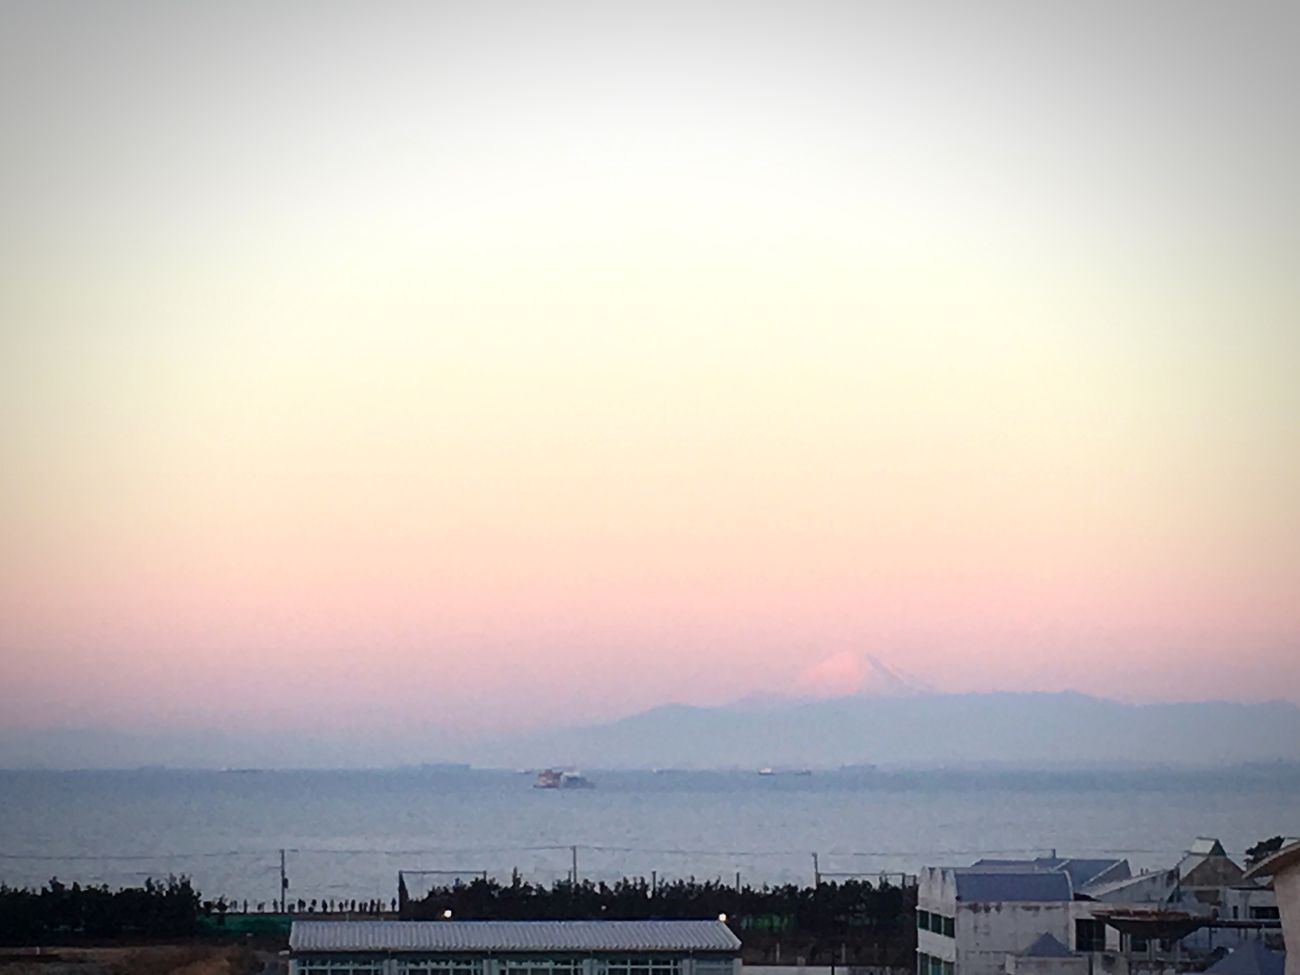 Mount Fuji Views In The Distance Mount FuJi Outdoors Tokyo Bay Tokyo Ocean View Chiba Sea Sunrise New Year New Year Around The World New Year 2017 Japan